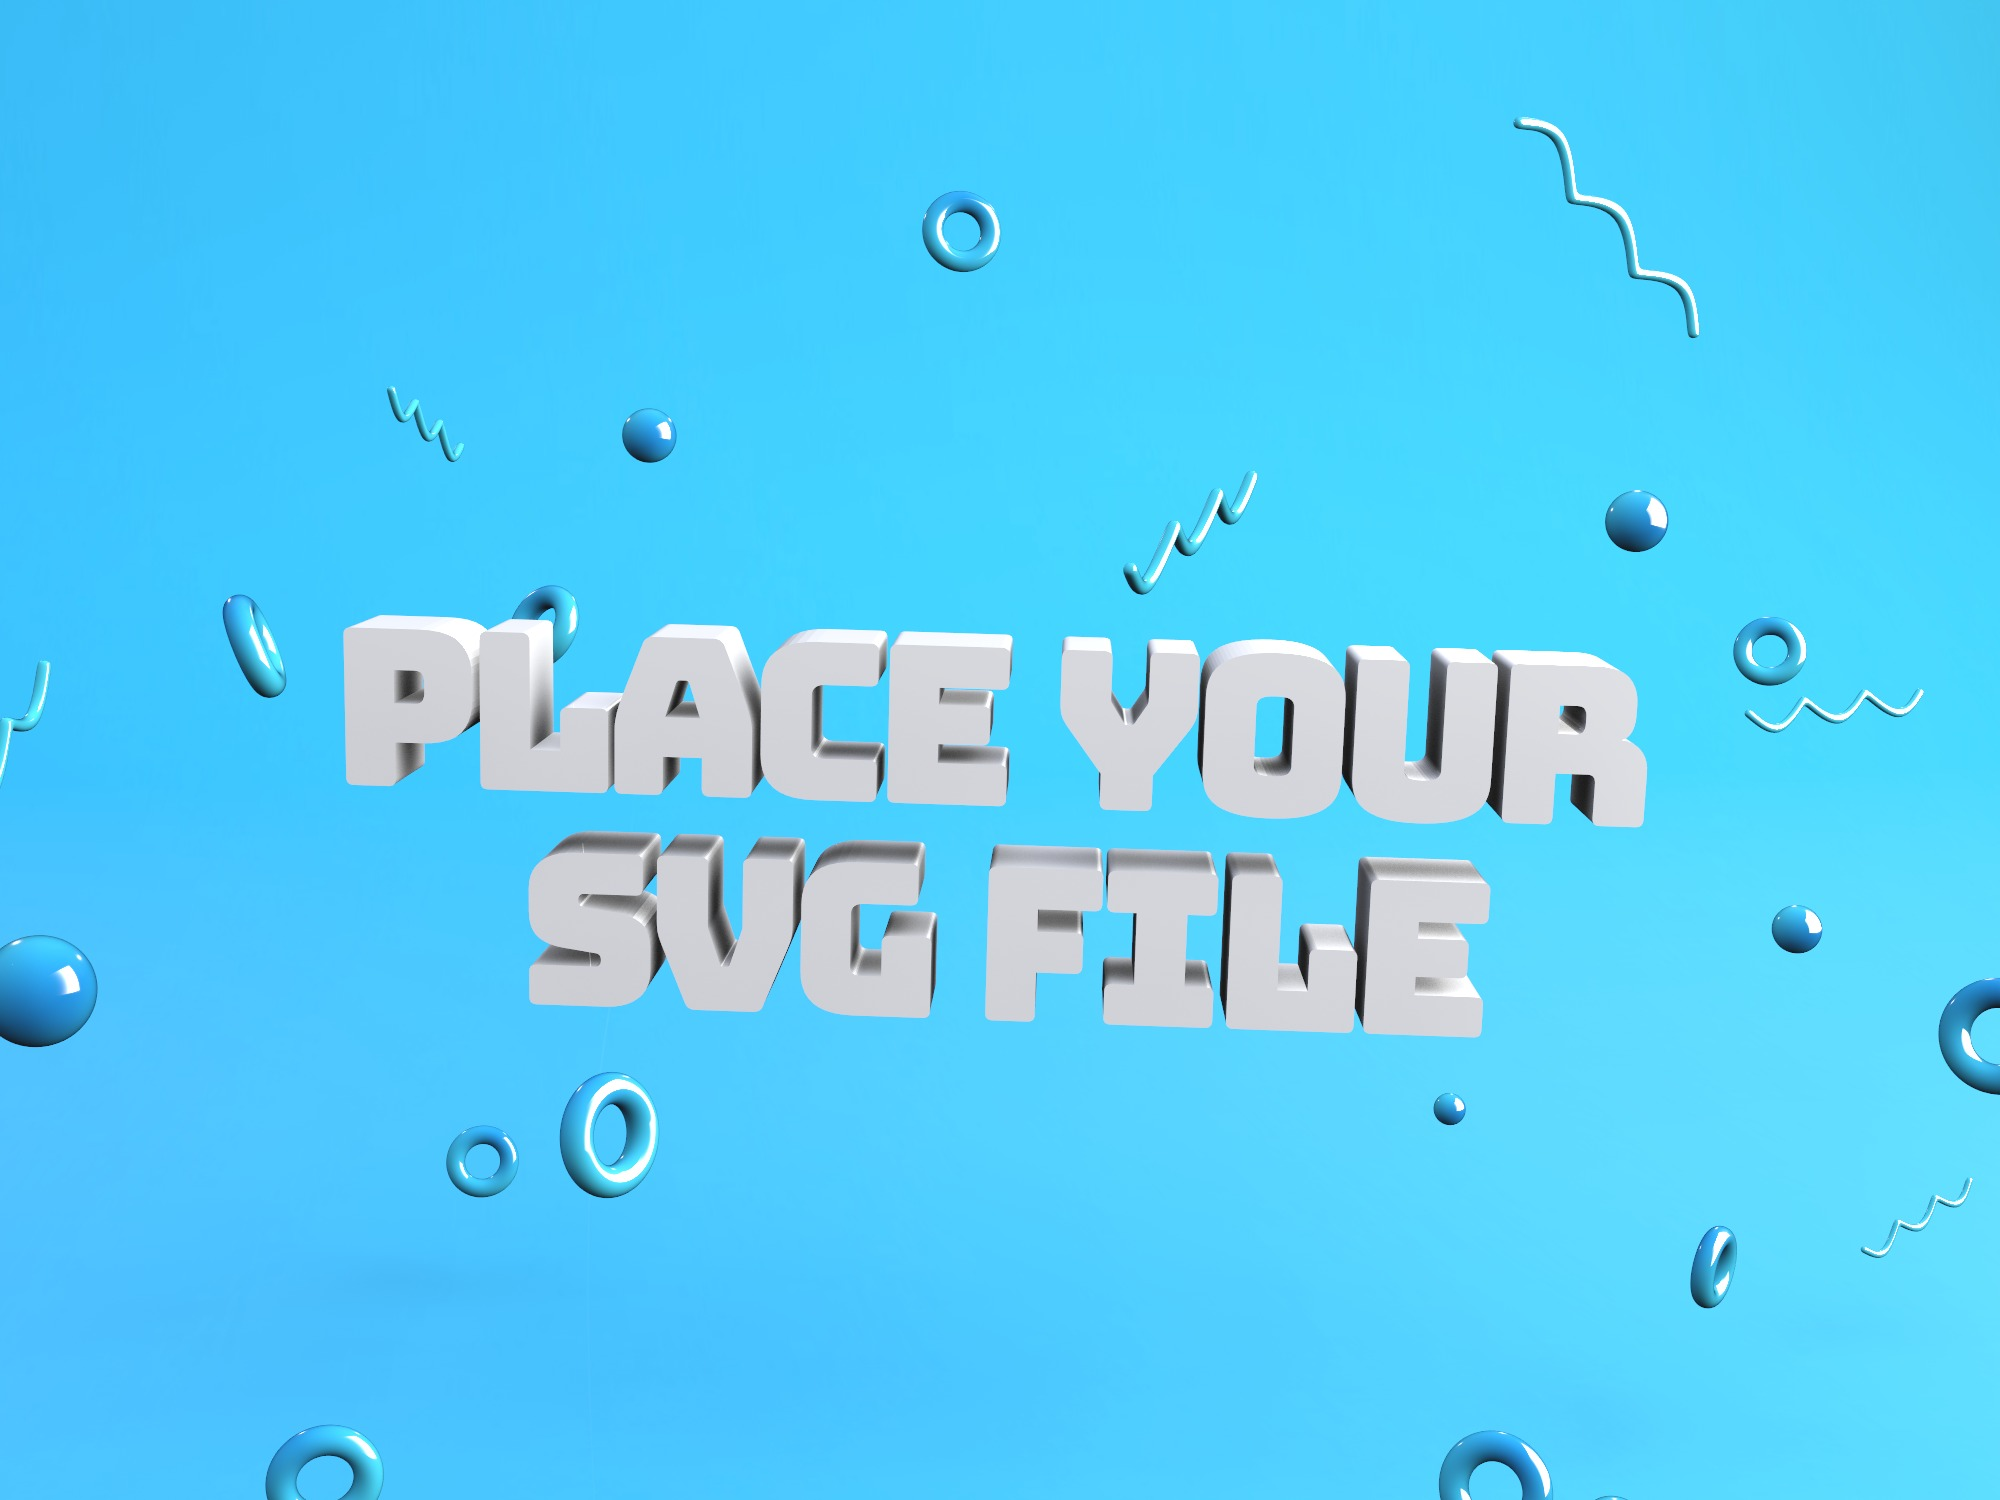 Create a 3D logo - place your SVG file - 3D design by VECTARY on Jul 18, 2018